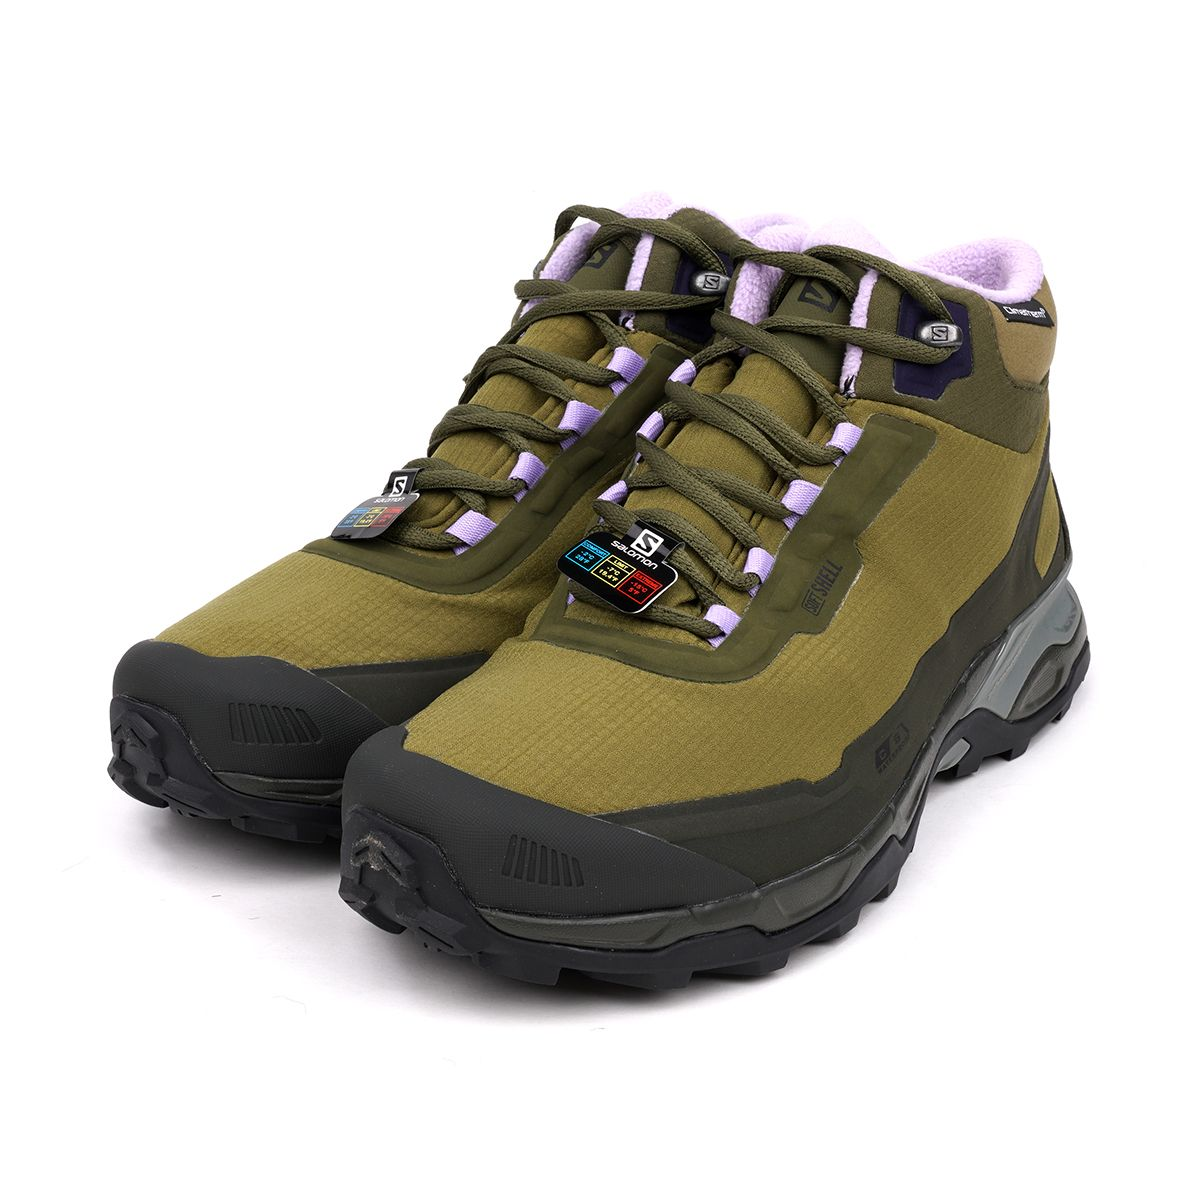 BETTER GIFT SHOP x SALOMON FOOTWEAR SHELTER CSWP FOR BETTER / MARTINI OLIVE-OLIVE NIGHT-LAVENDER